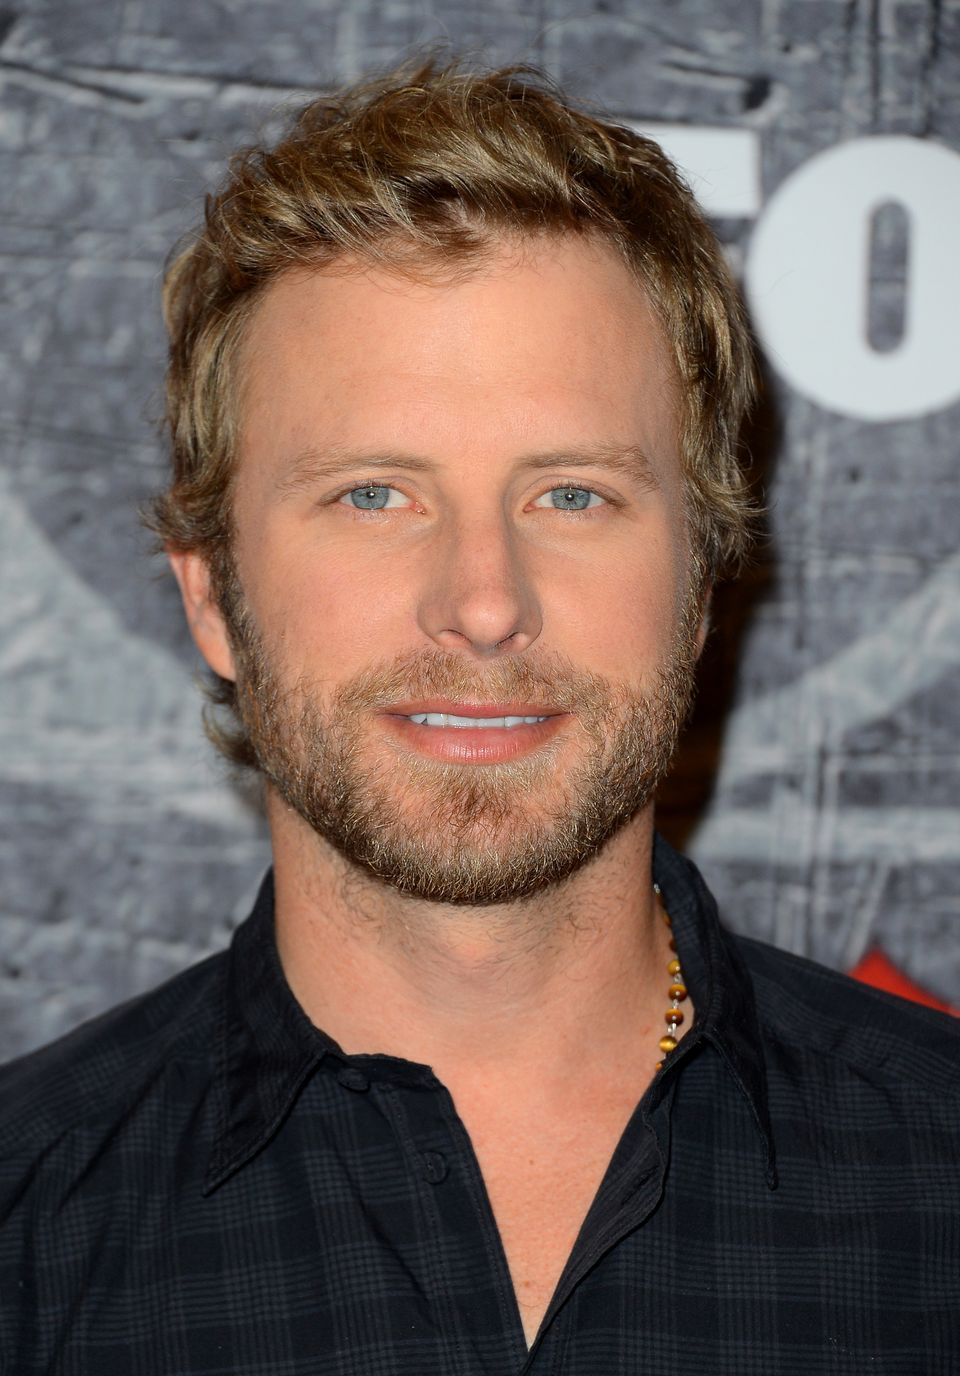 Dierks Bentley Whitepages Blog Dierks Bentley Pinterest